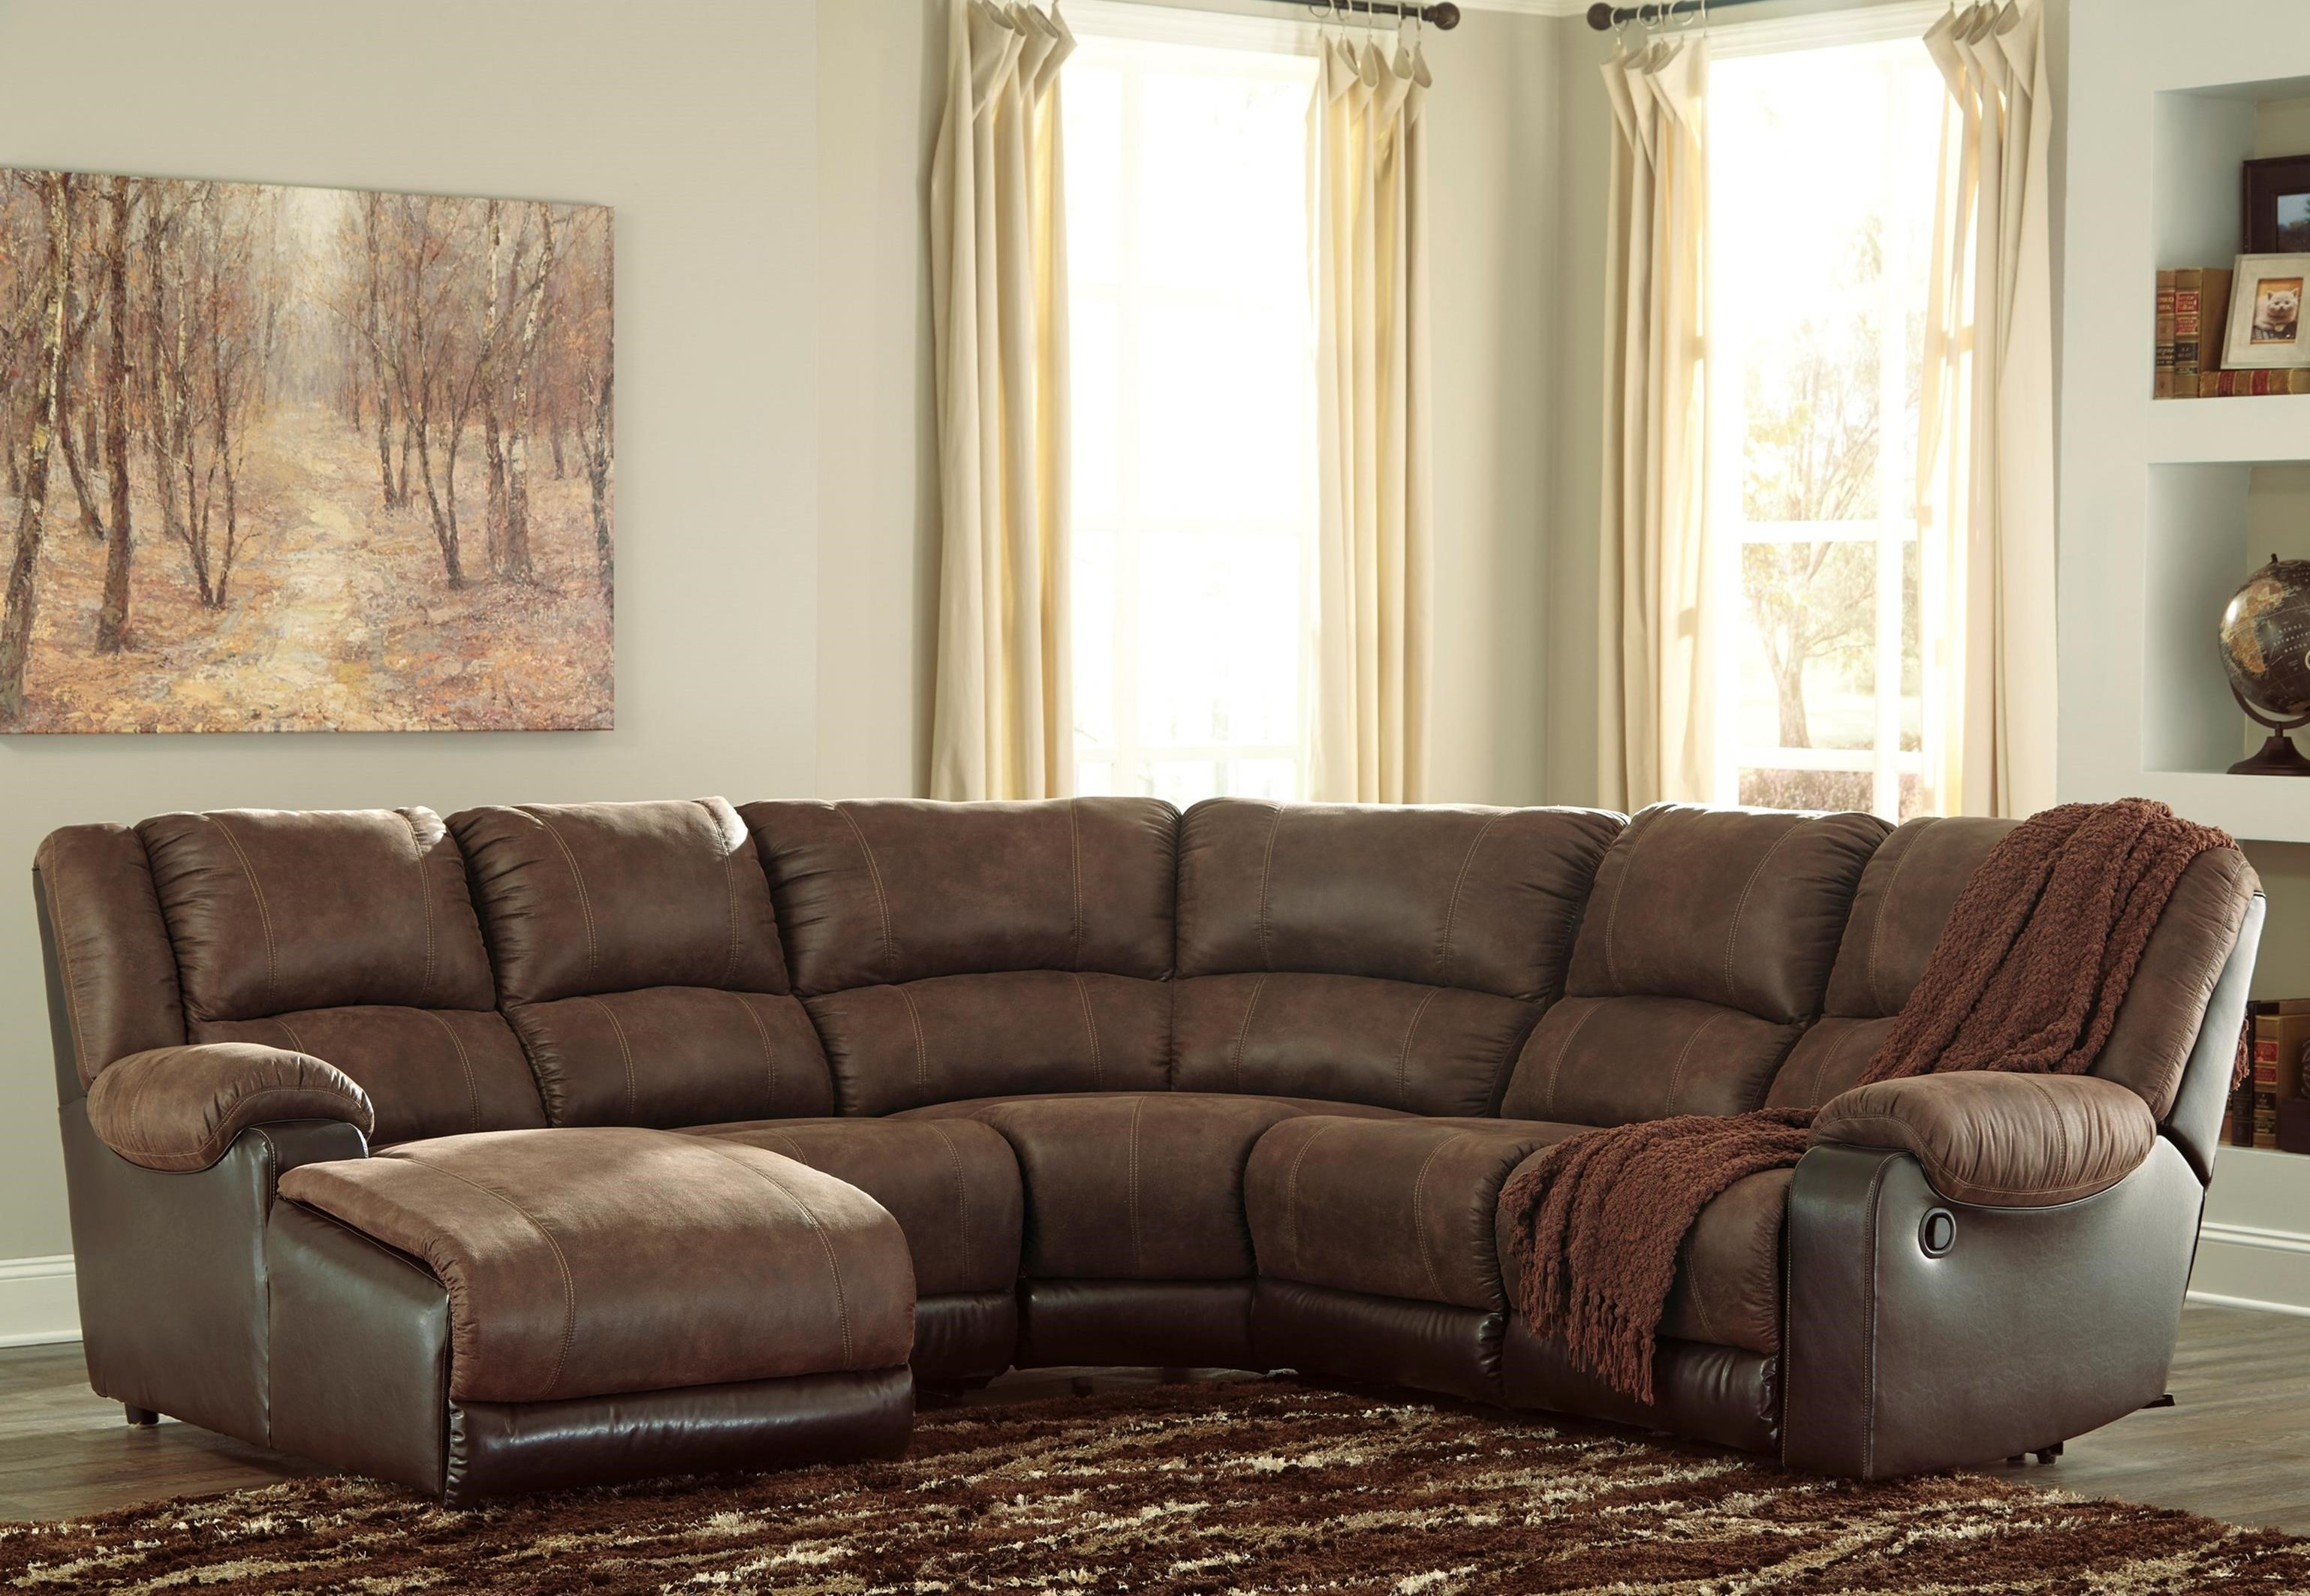 Nantahala Reclining Sectional with Chaise by Ashley (Signature Design) at Johnny Janosik